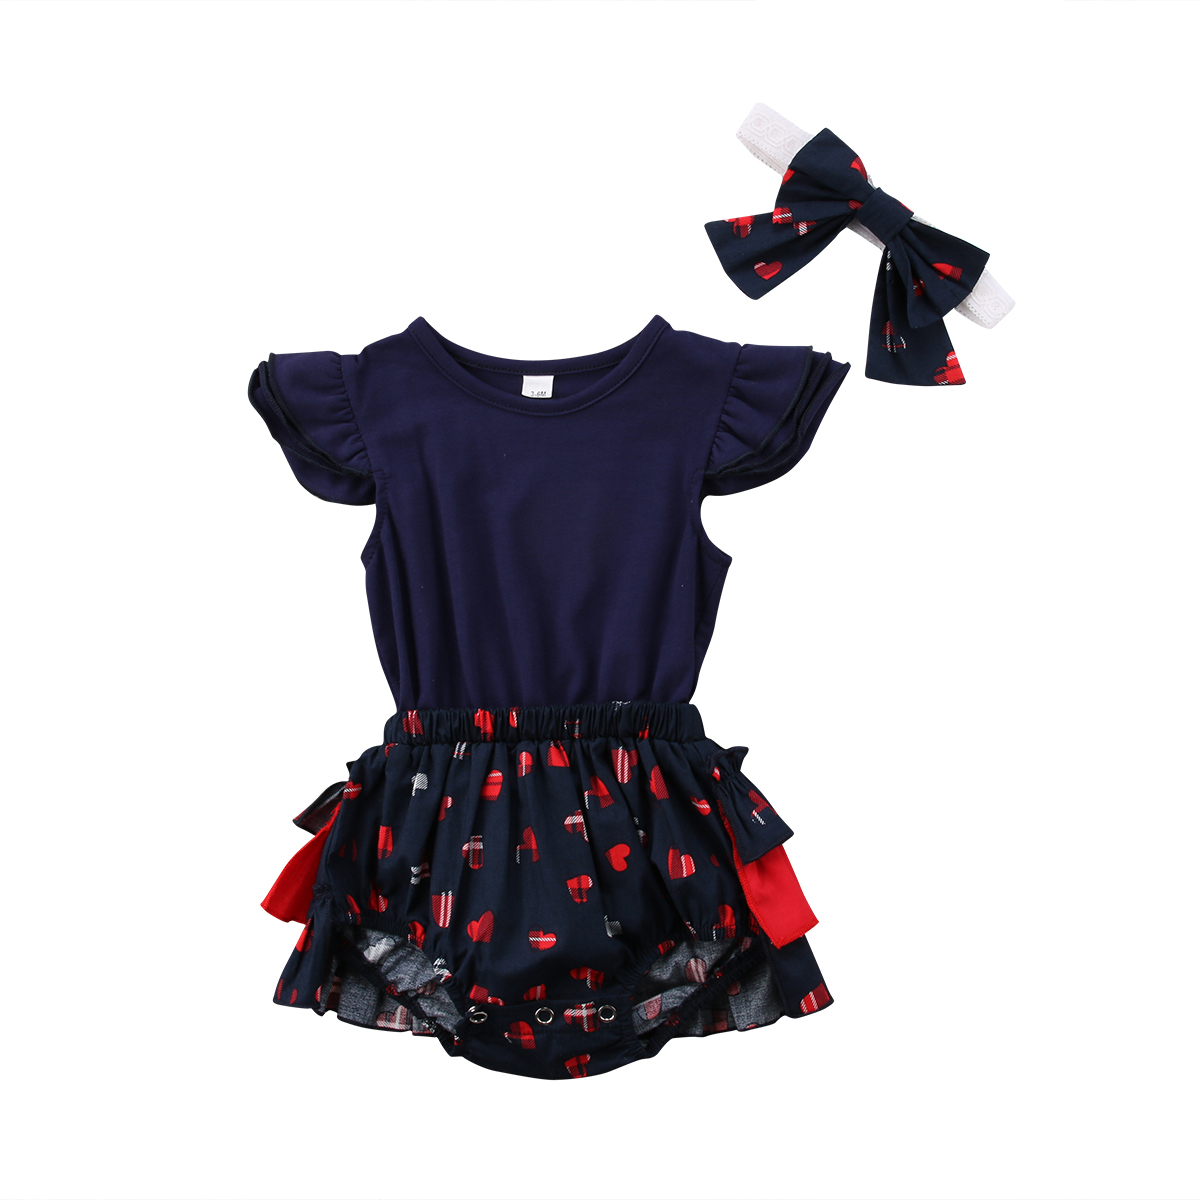 USA Canis Toddler Baby Girl Sequin Tulle Snow White Romper Bodysuit Dress Outfit Clothing, Shoes & Accessories